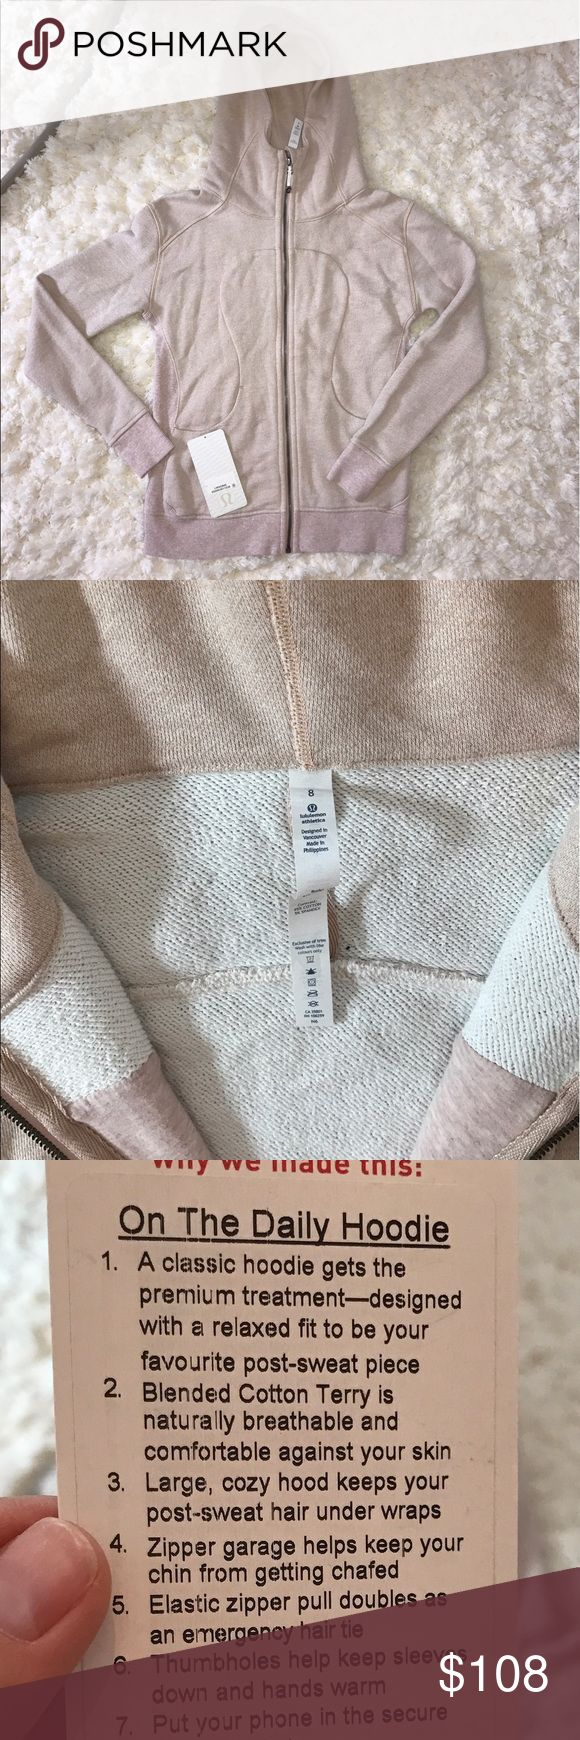 {lululemon} on the daily hoodie heathered blush Pinkish rose beige tone. Purchased at lululemon store w/in last year, took on plane with me but didn't need, then found out I was pregnant and haven't worn since. I'll send tag with in pocket. #onthedaily #lululemon #hoodie lululemon athletica Tops Sweatshirts & Hoodies